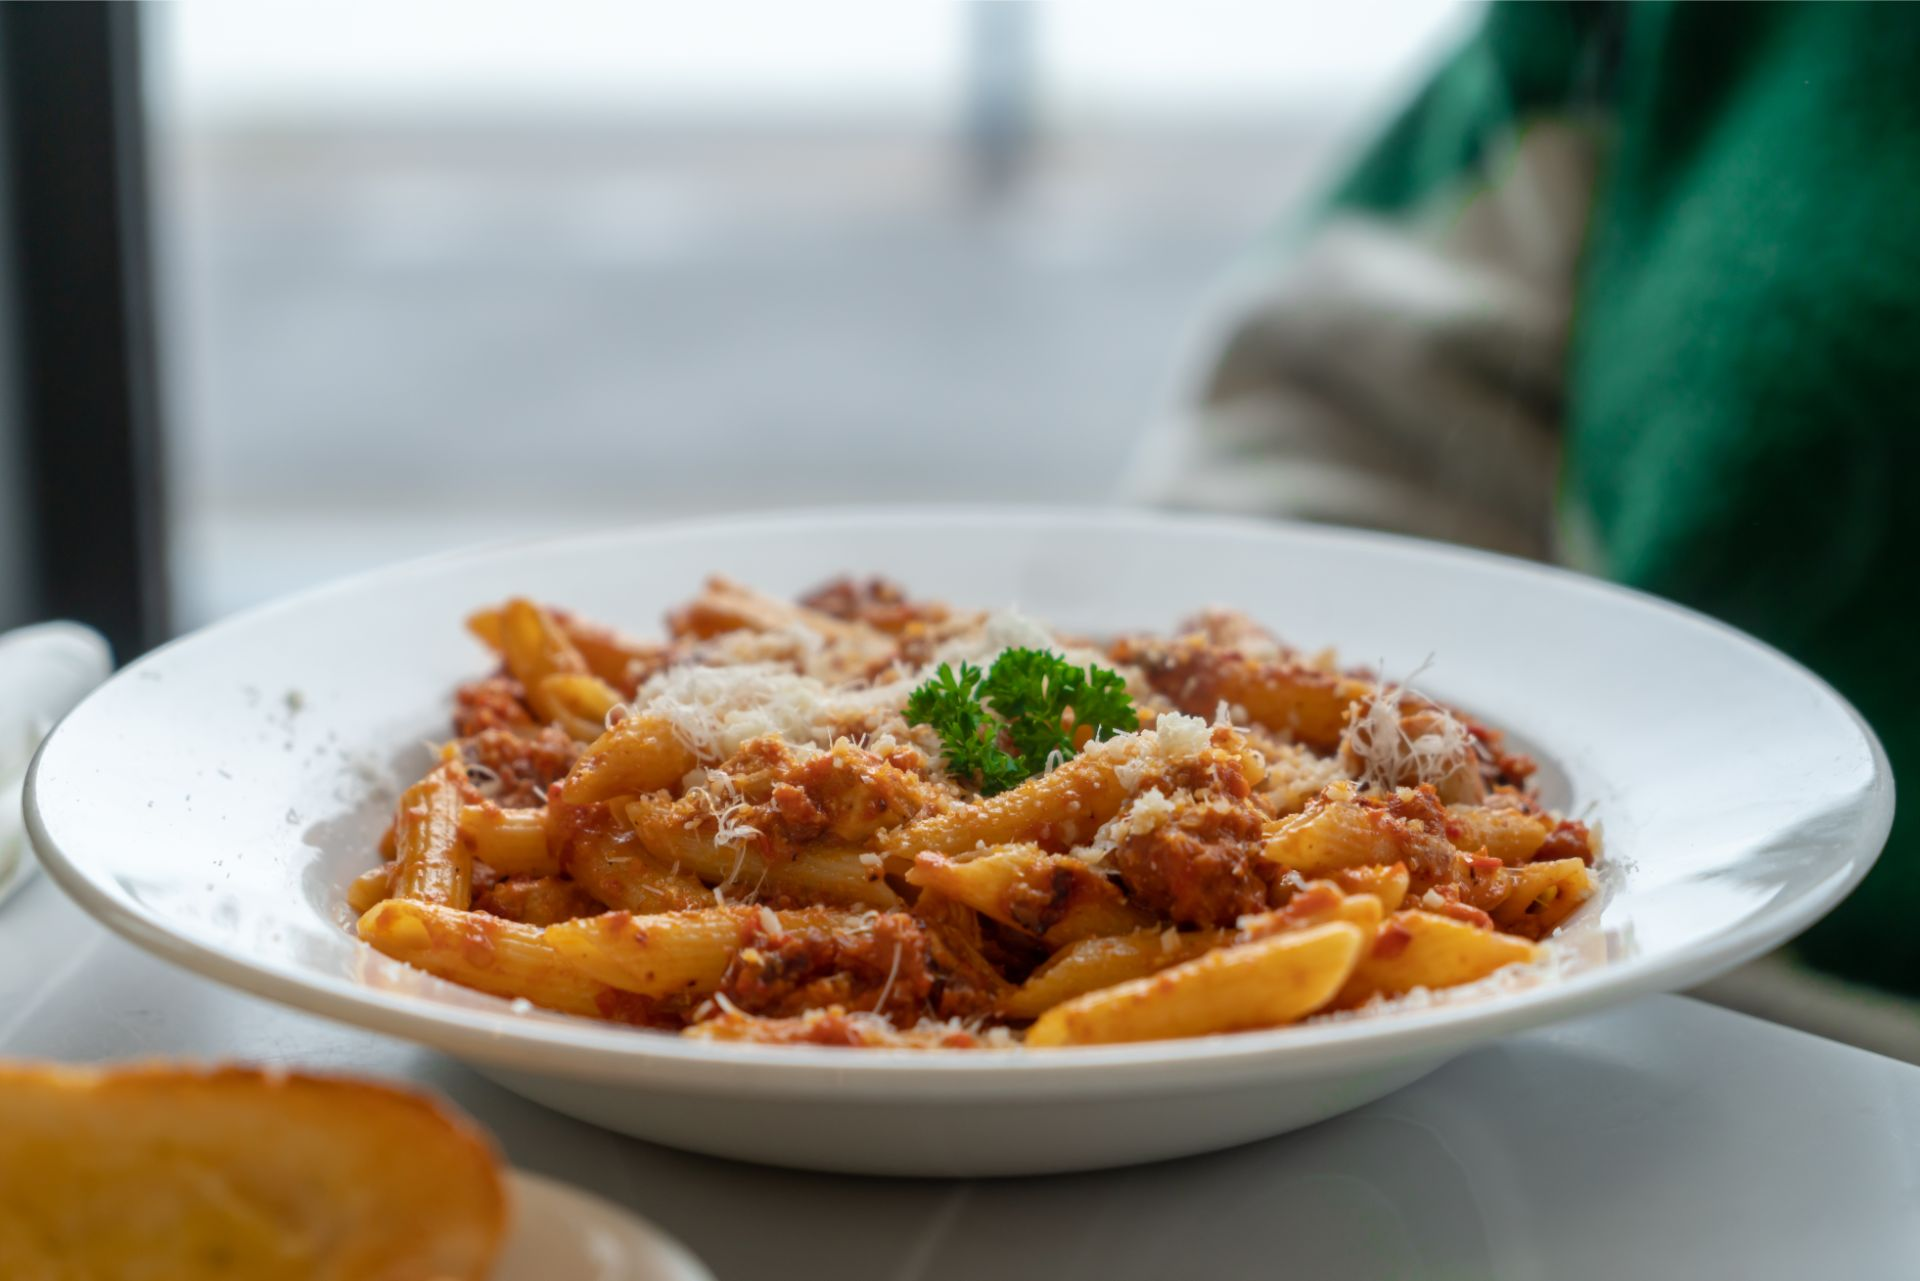 spicy-chicken-pasta-in-bowl-lunch-at-verdis-mumbles-swansea-bay-wales